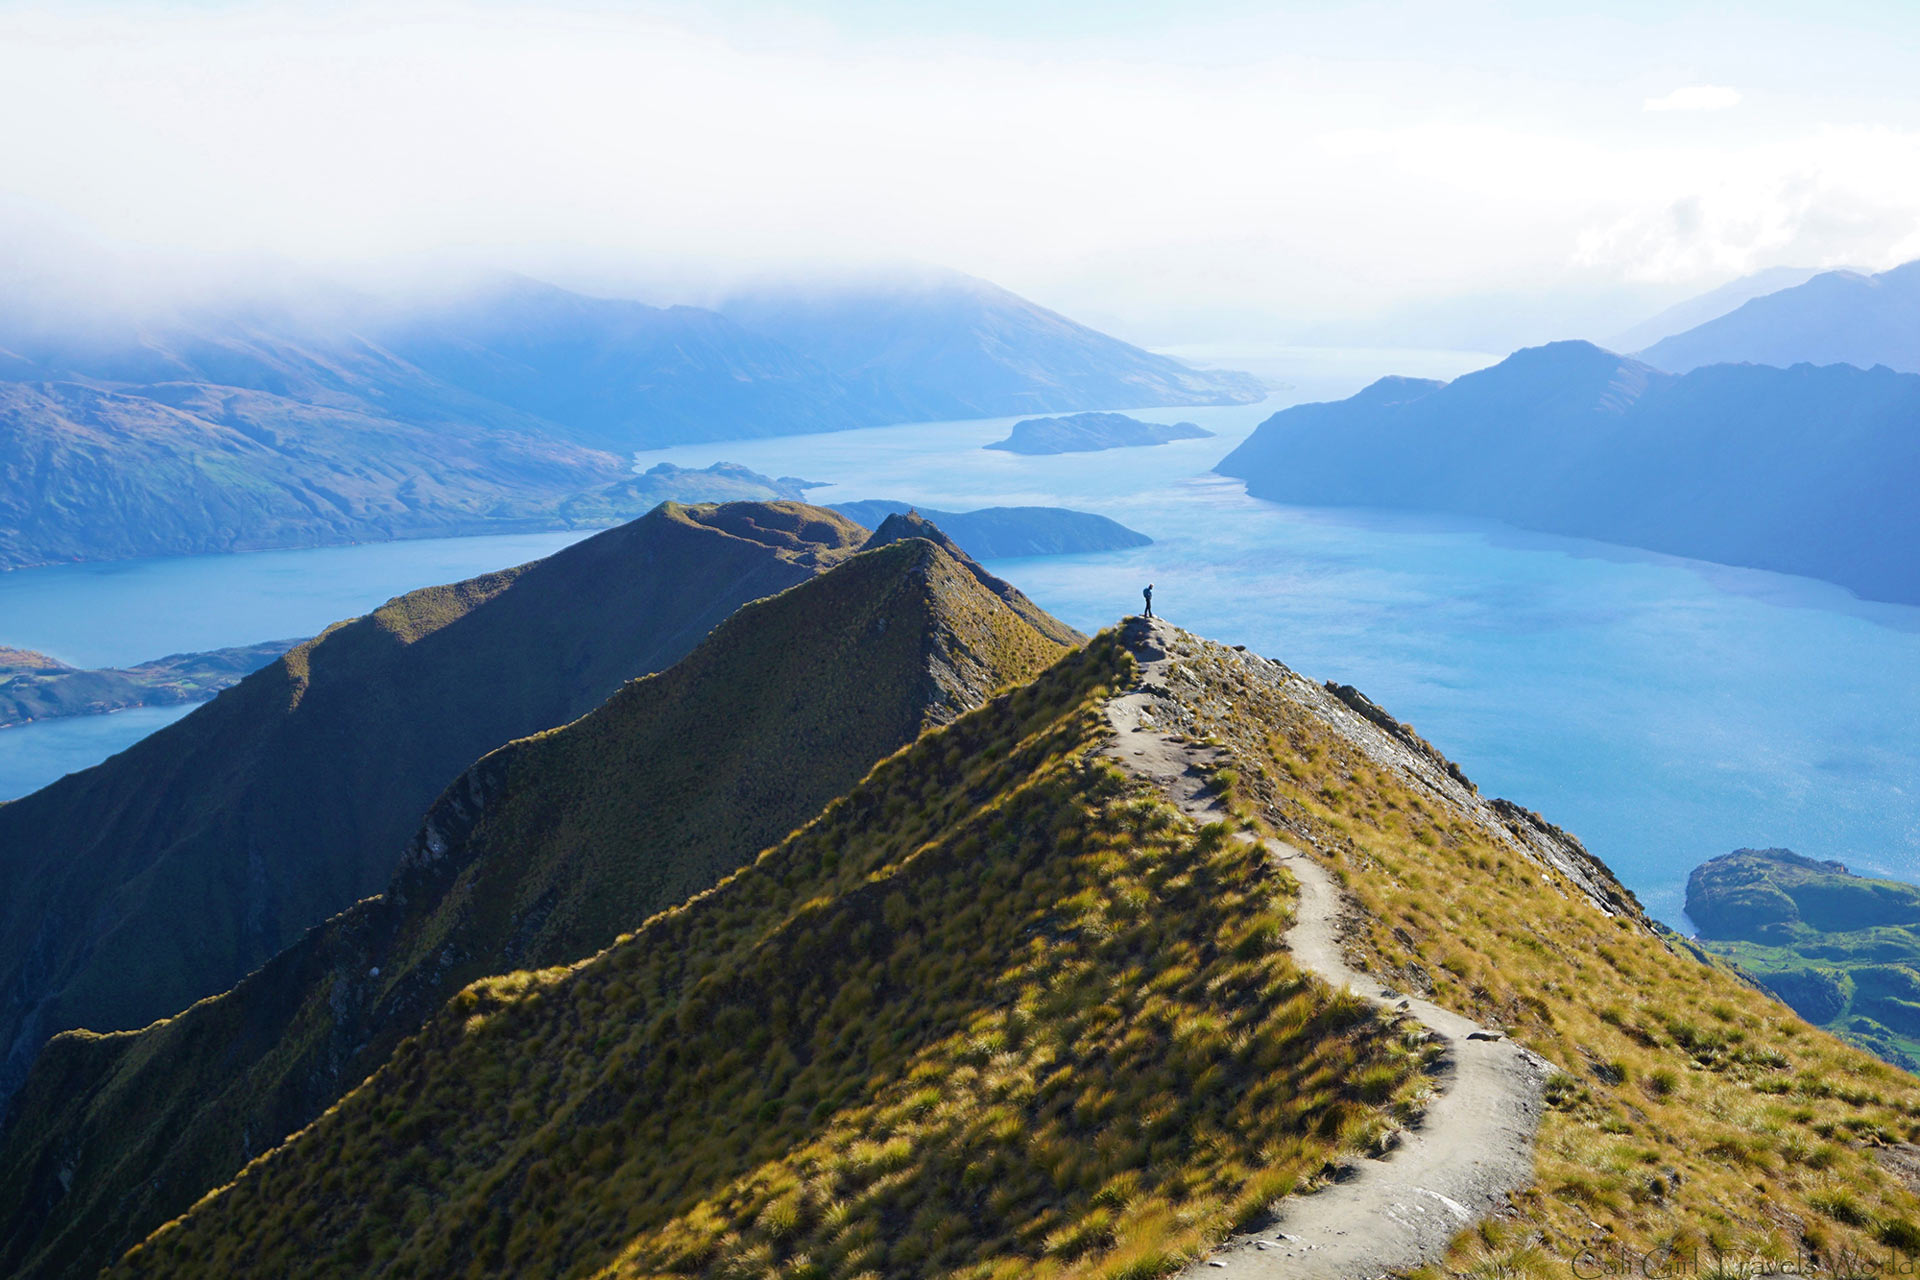 Hiking to the top of roys peak with a spectacular view of Wanaka in the South island of New Zealand.